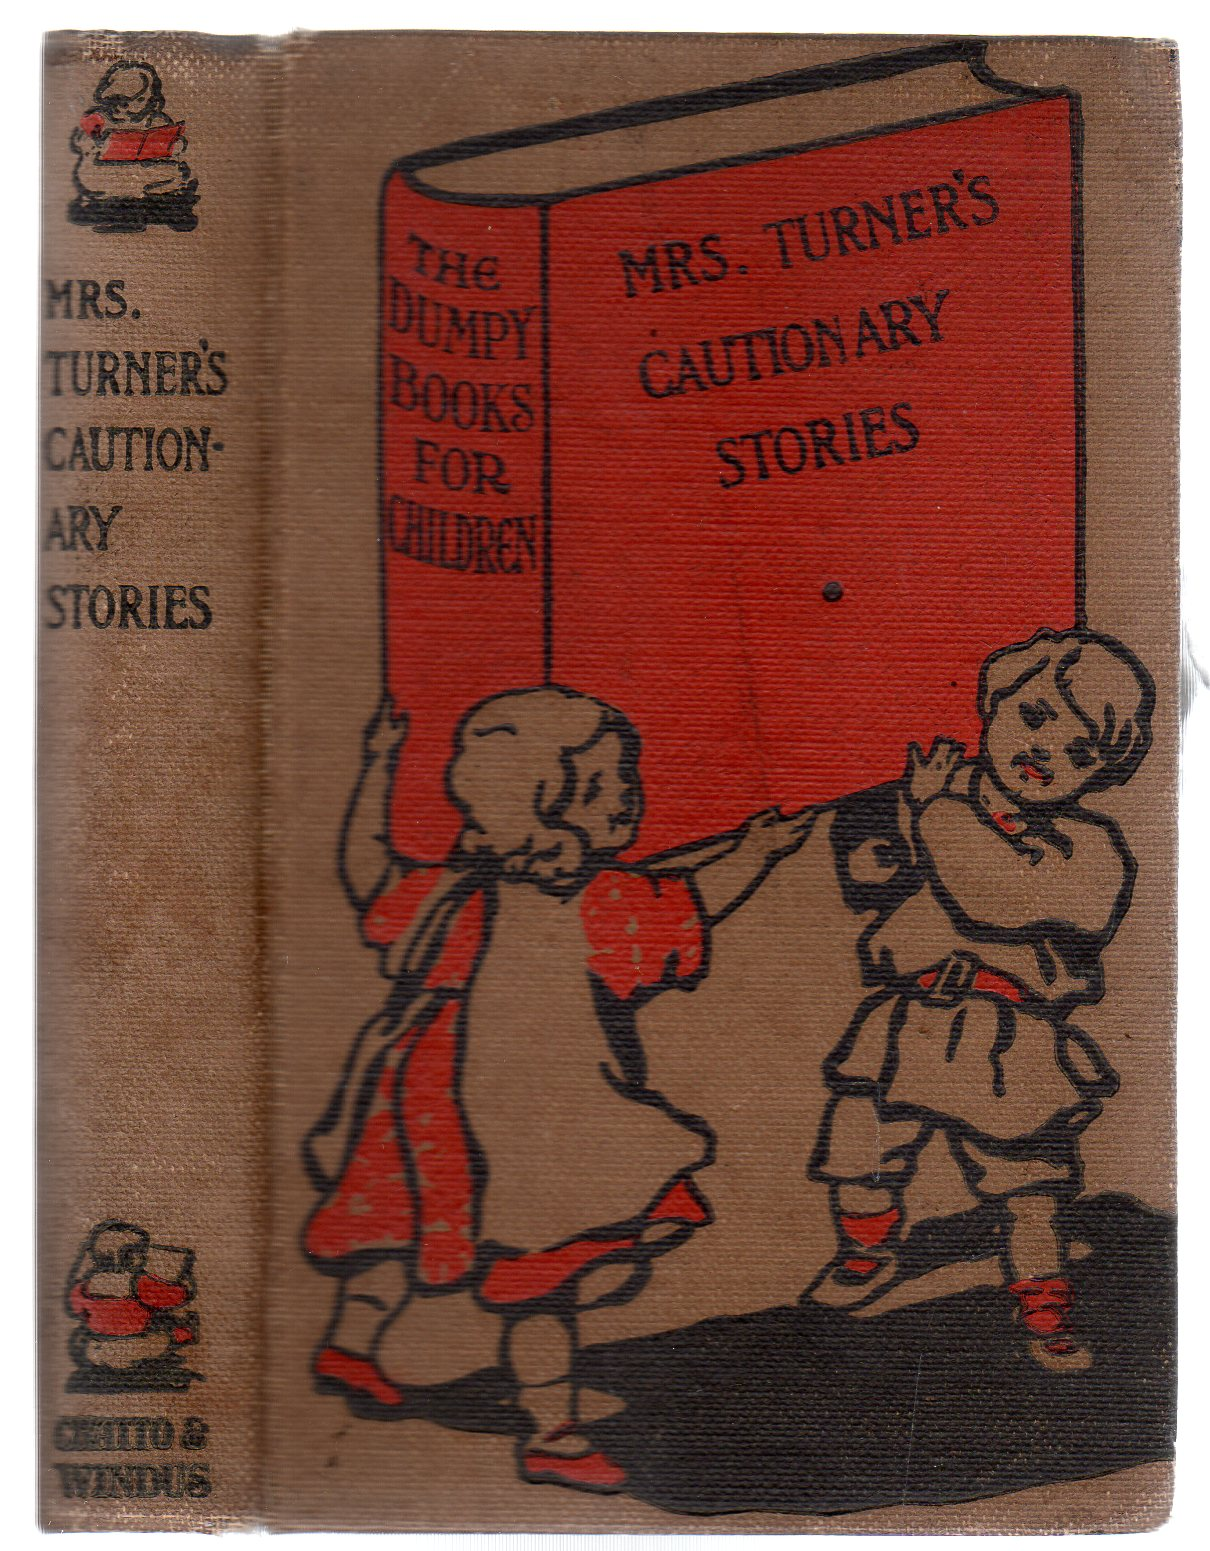 Image for Mrs. Turner's Cautionary Stories